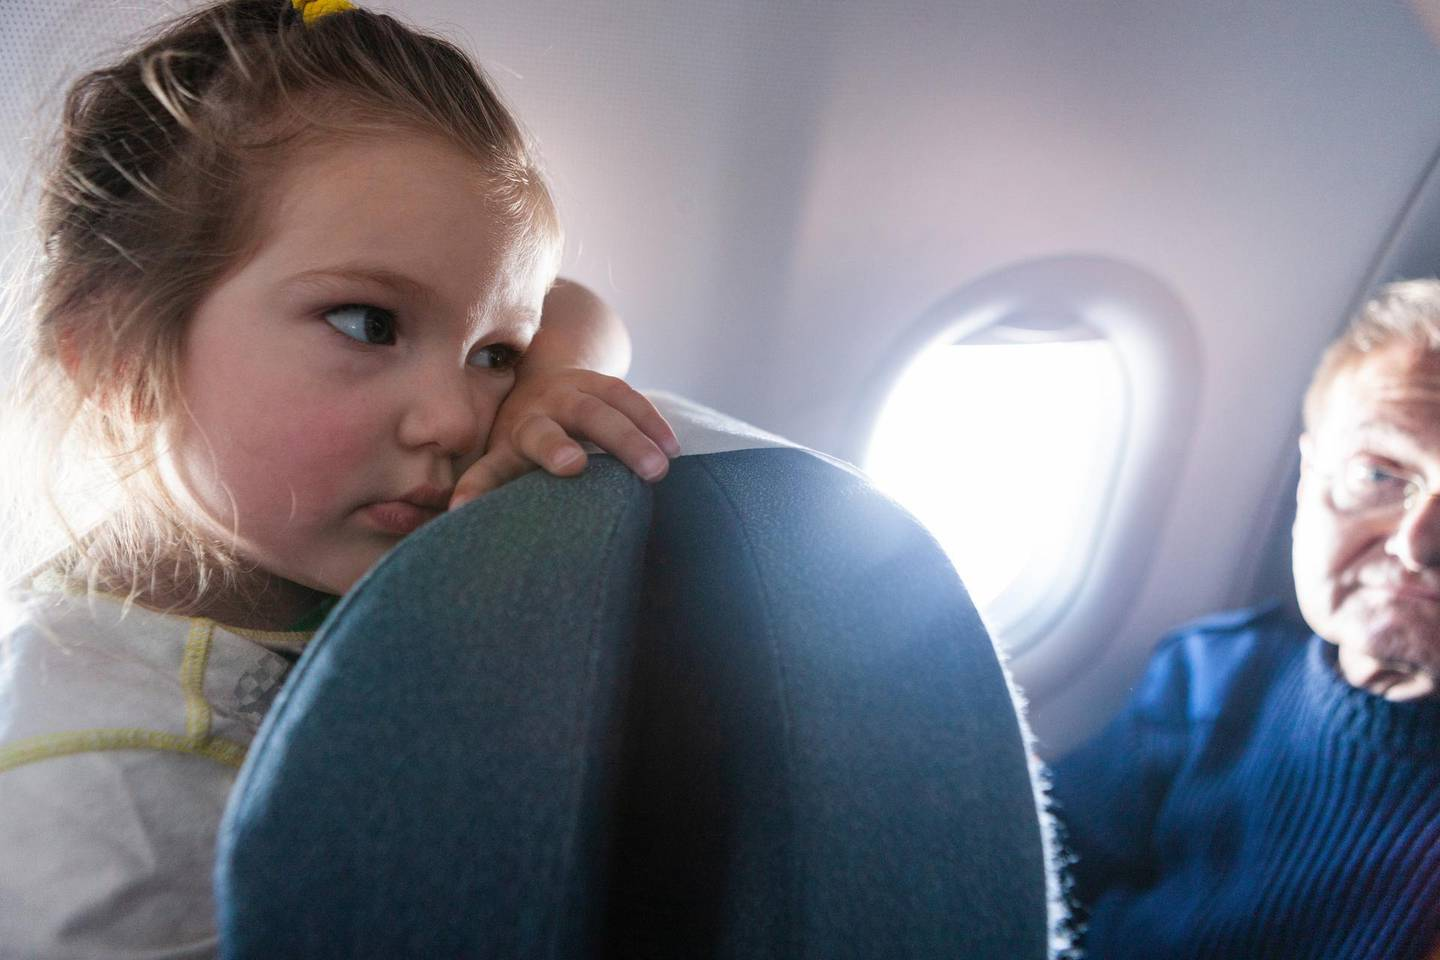 A bored child in the plane. Getty Images